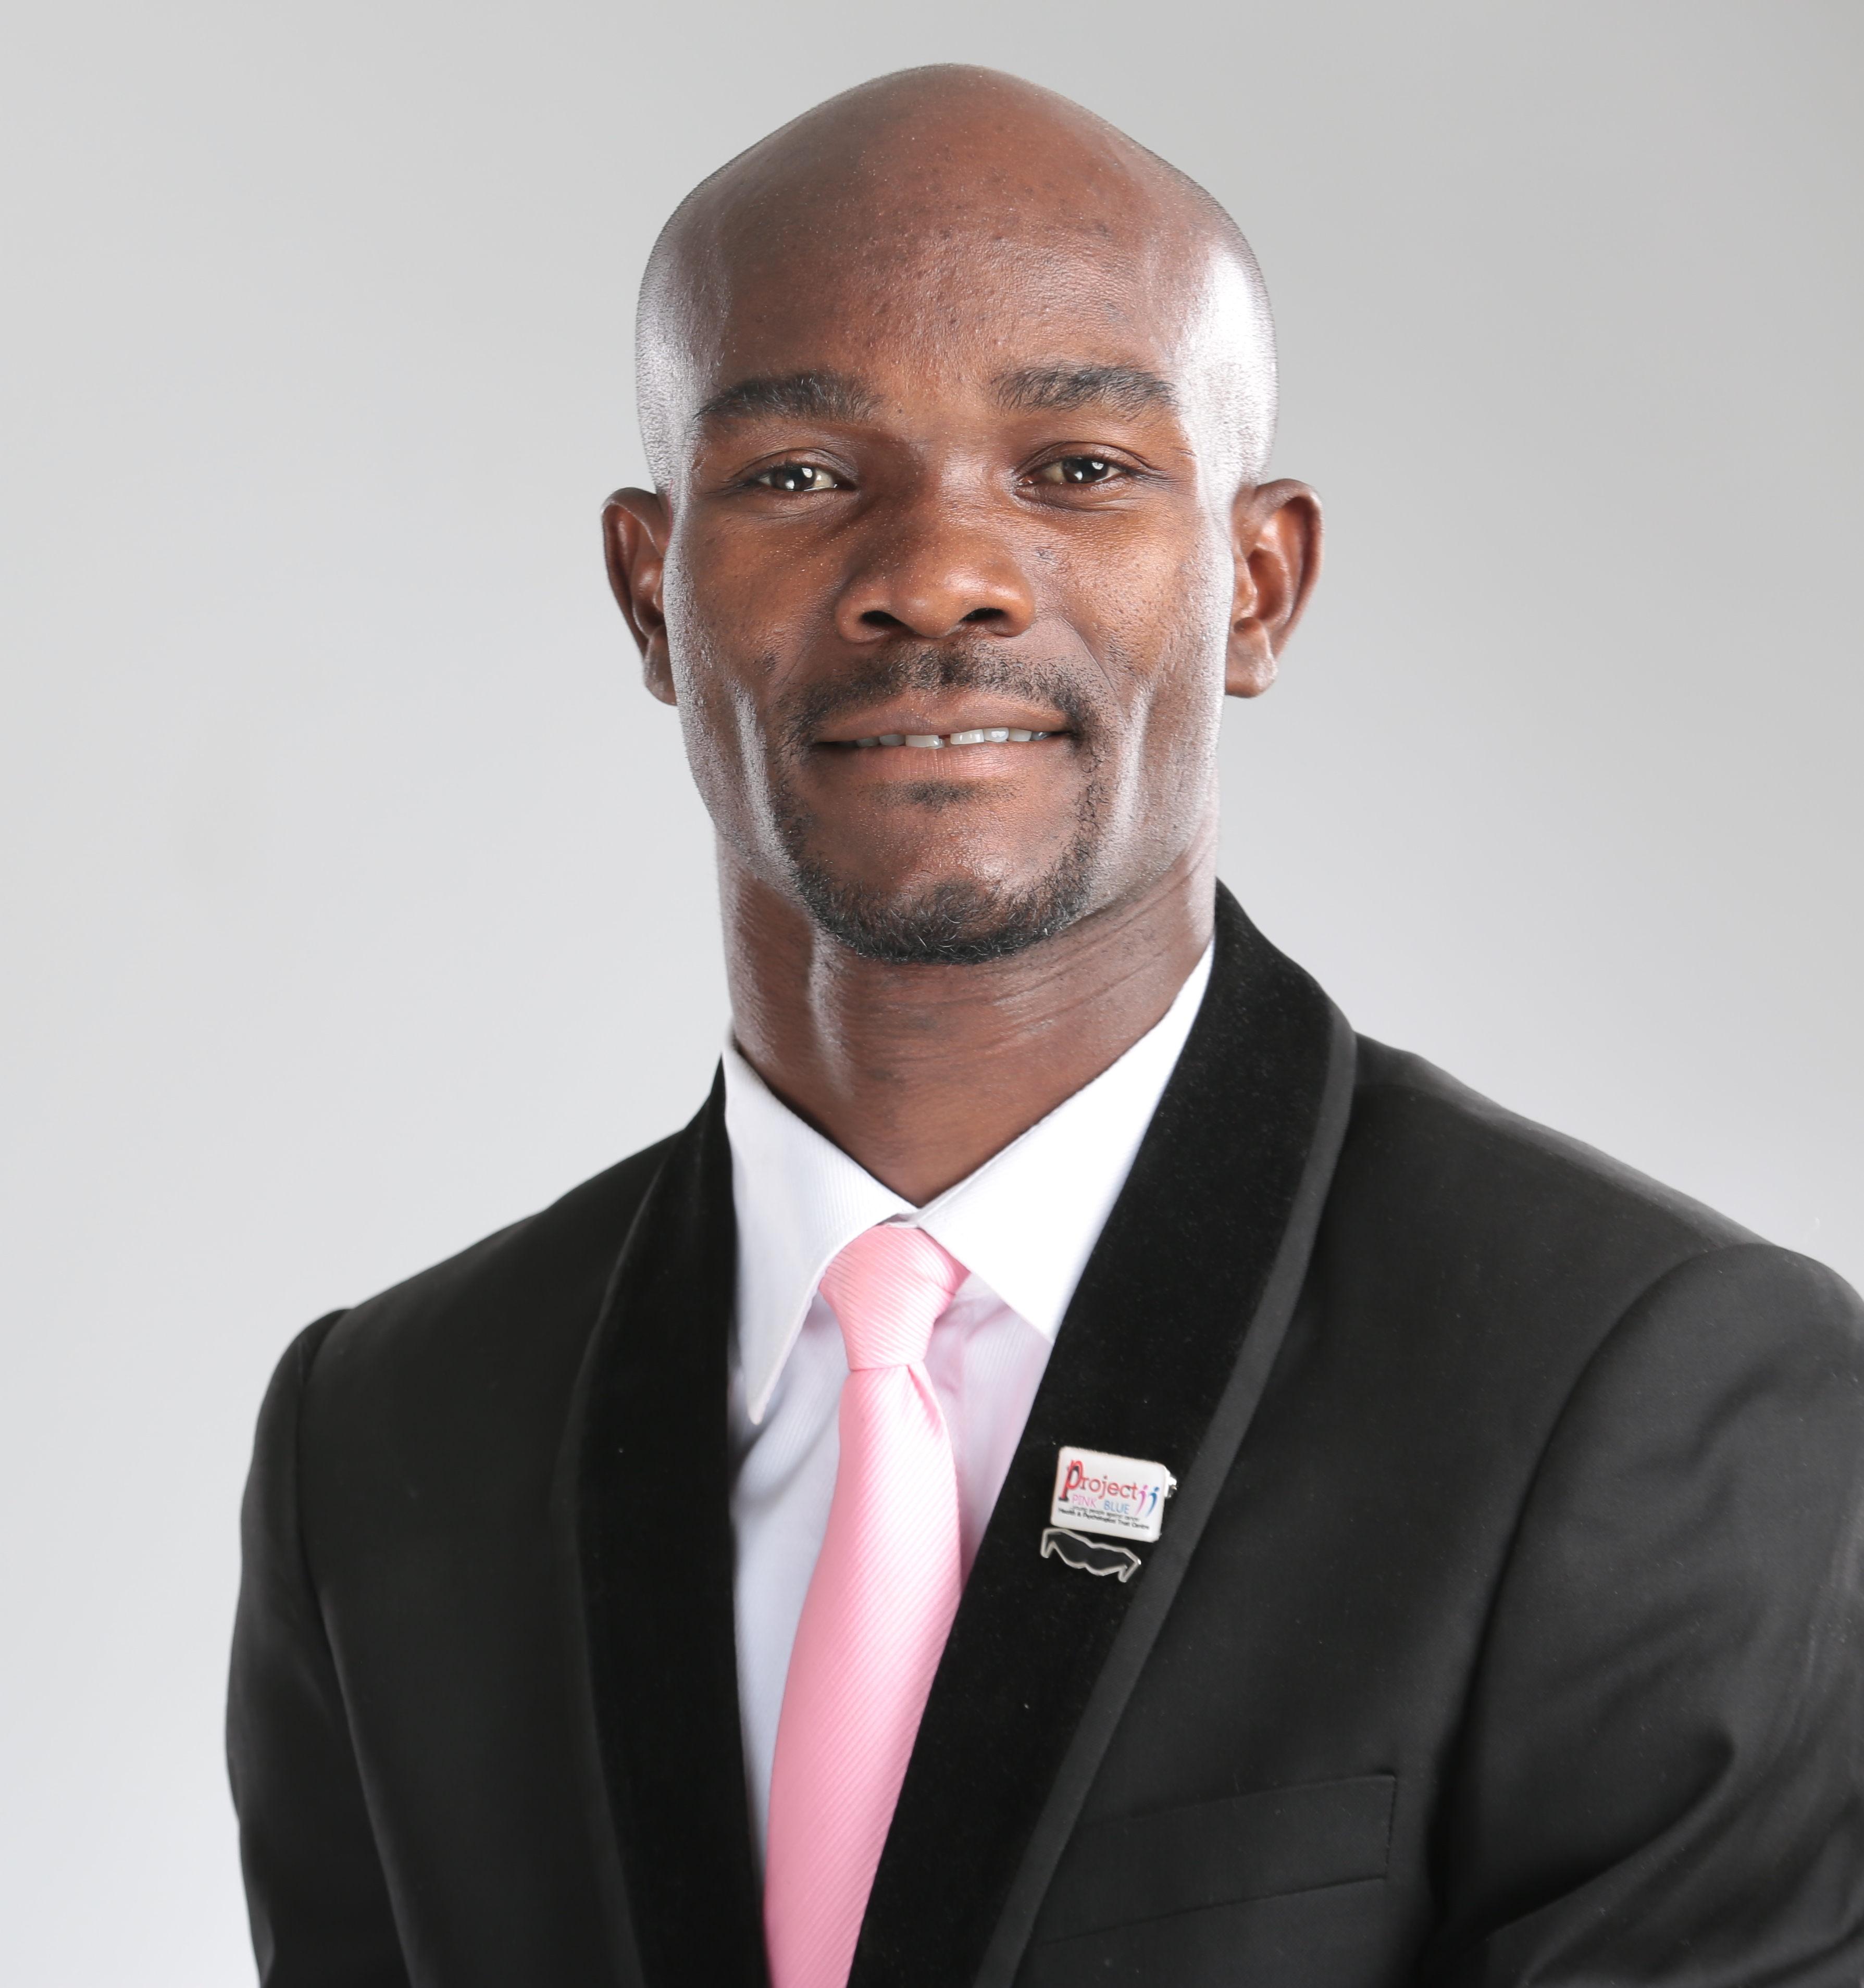 Headshot of young man wearing suit with pink tie